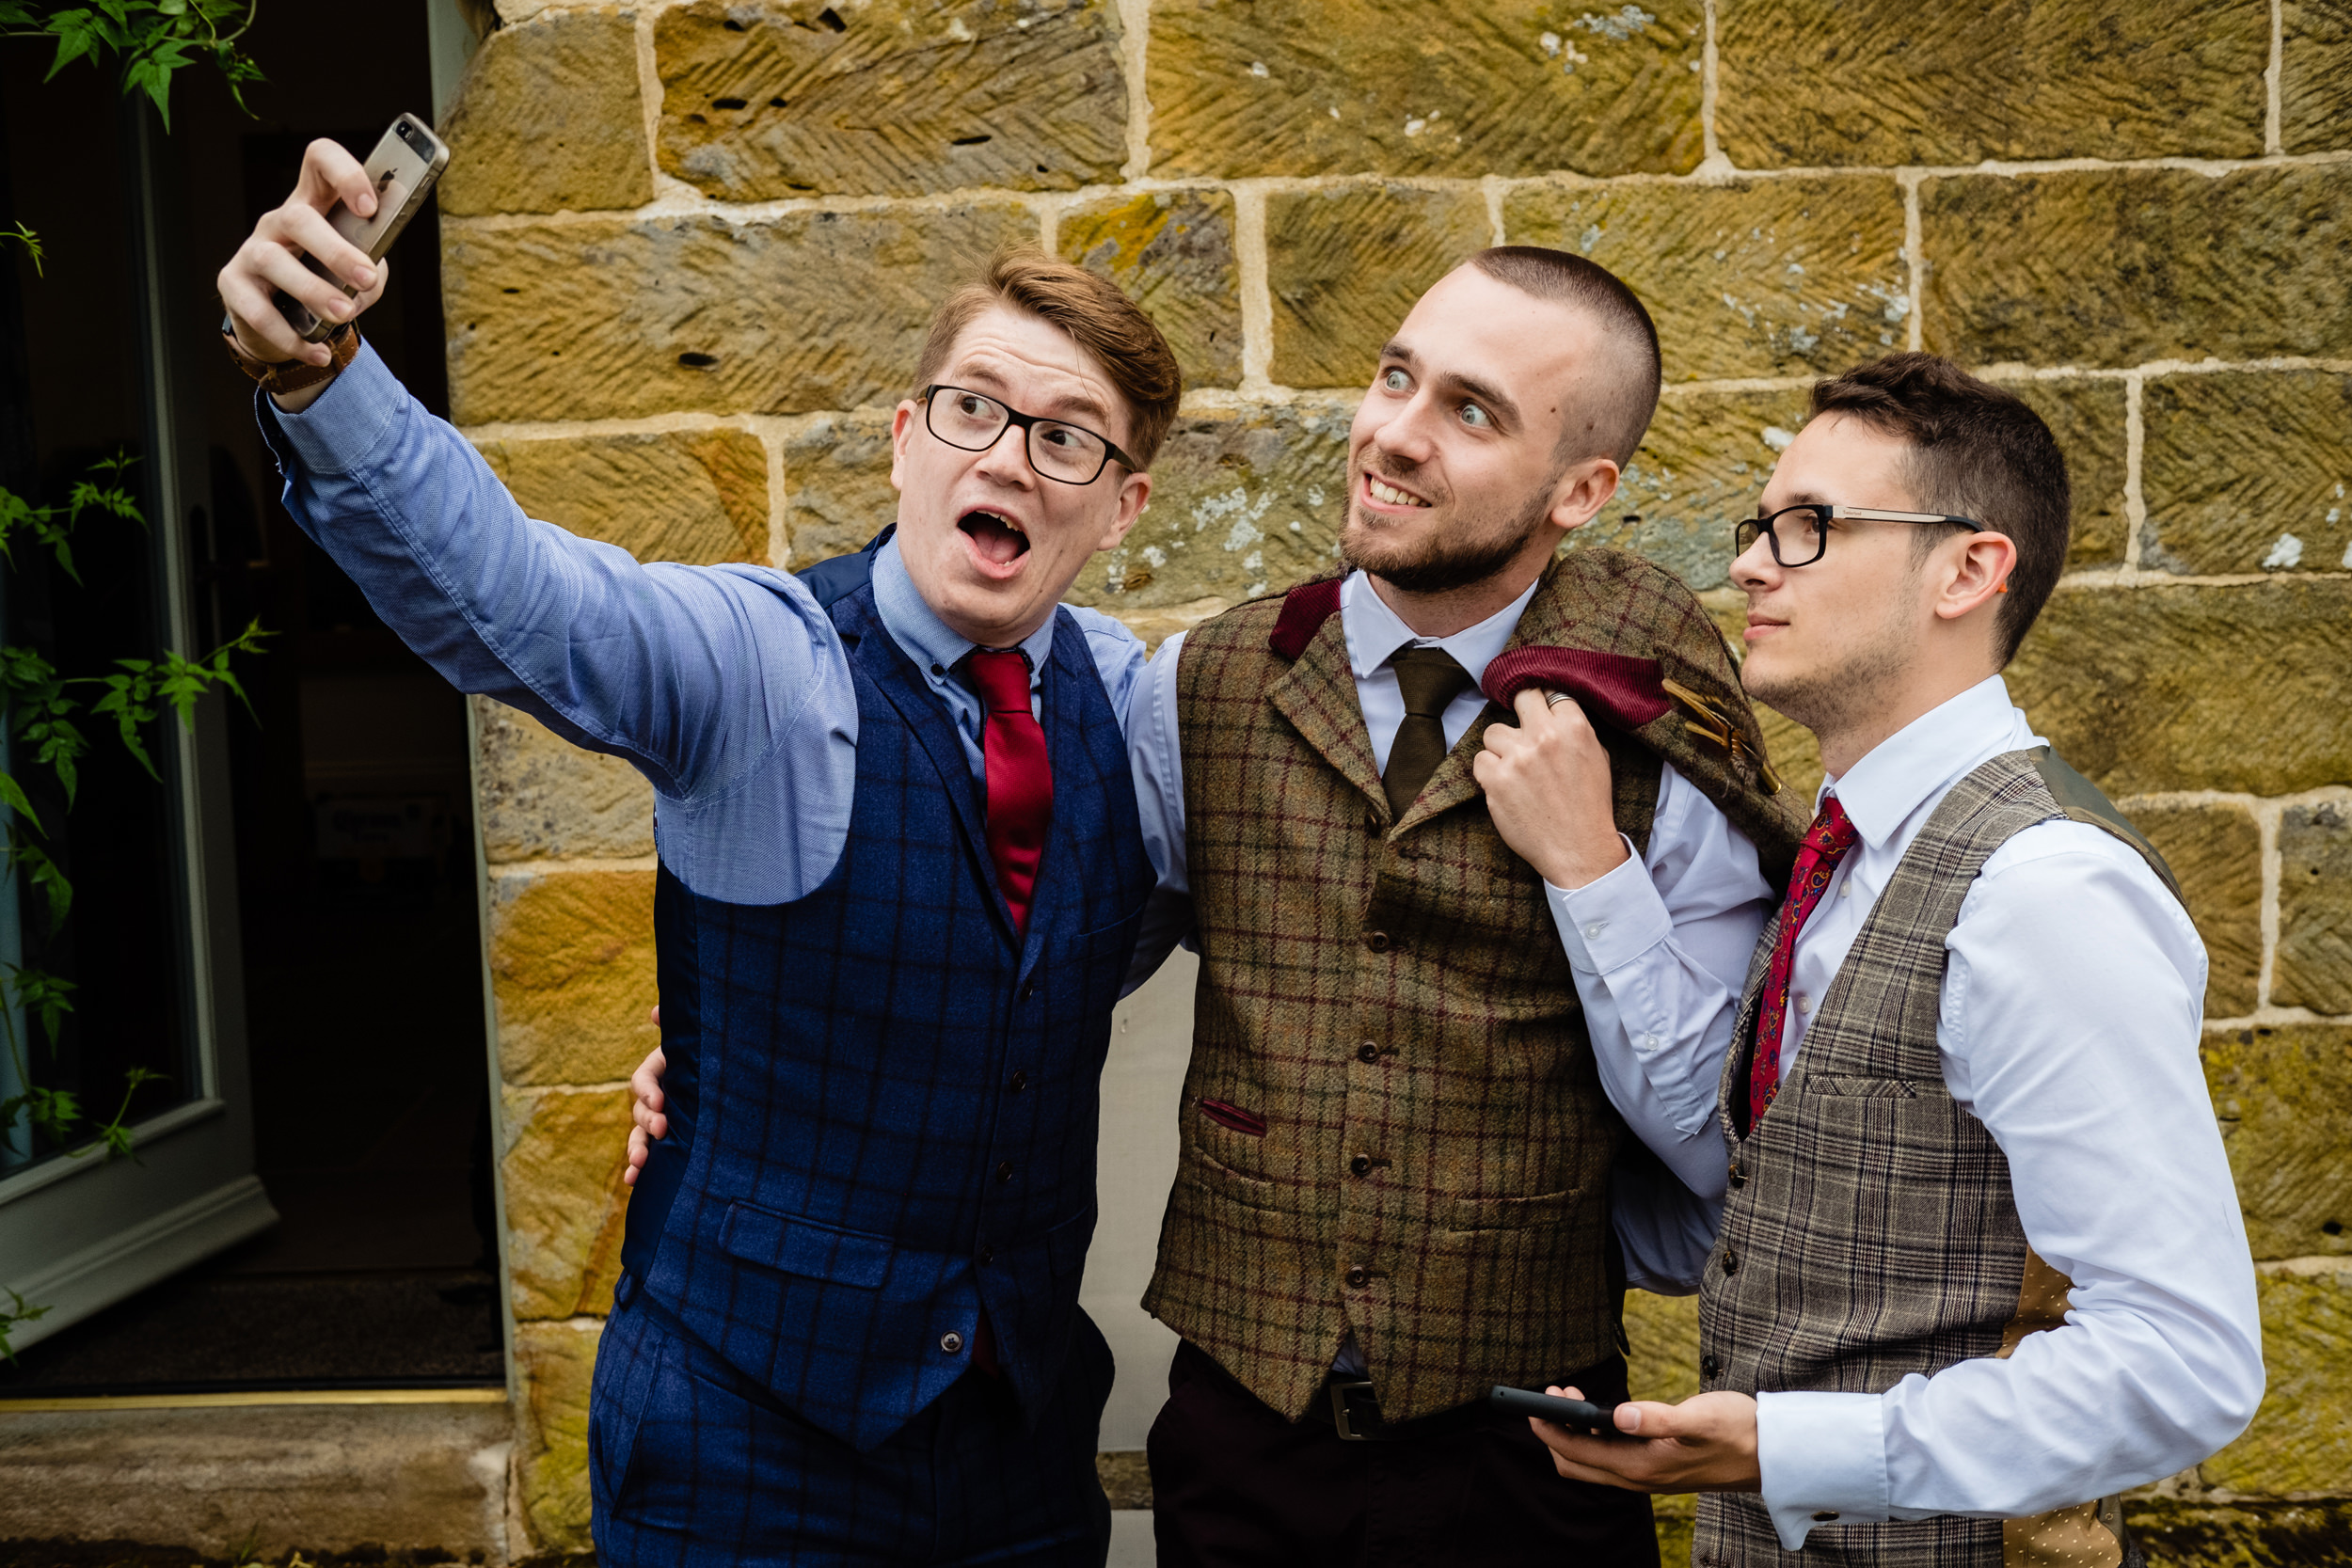 groom and friends taking a selfie. esk valley wedding photography by emma and rich.